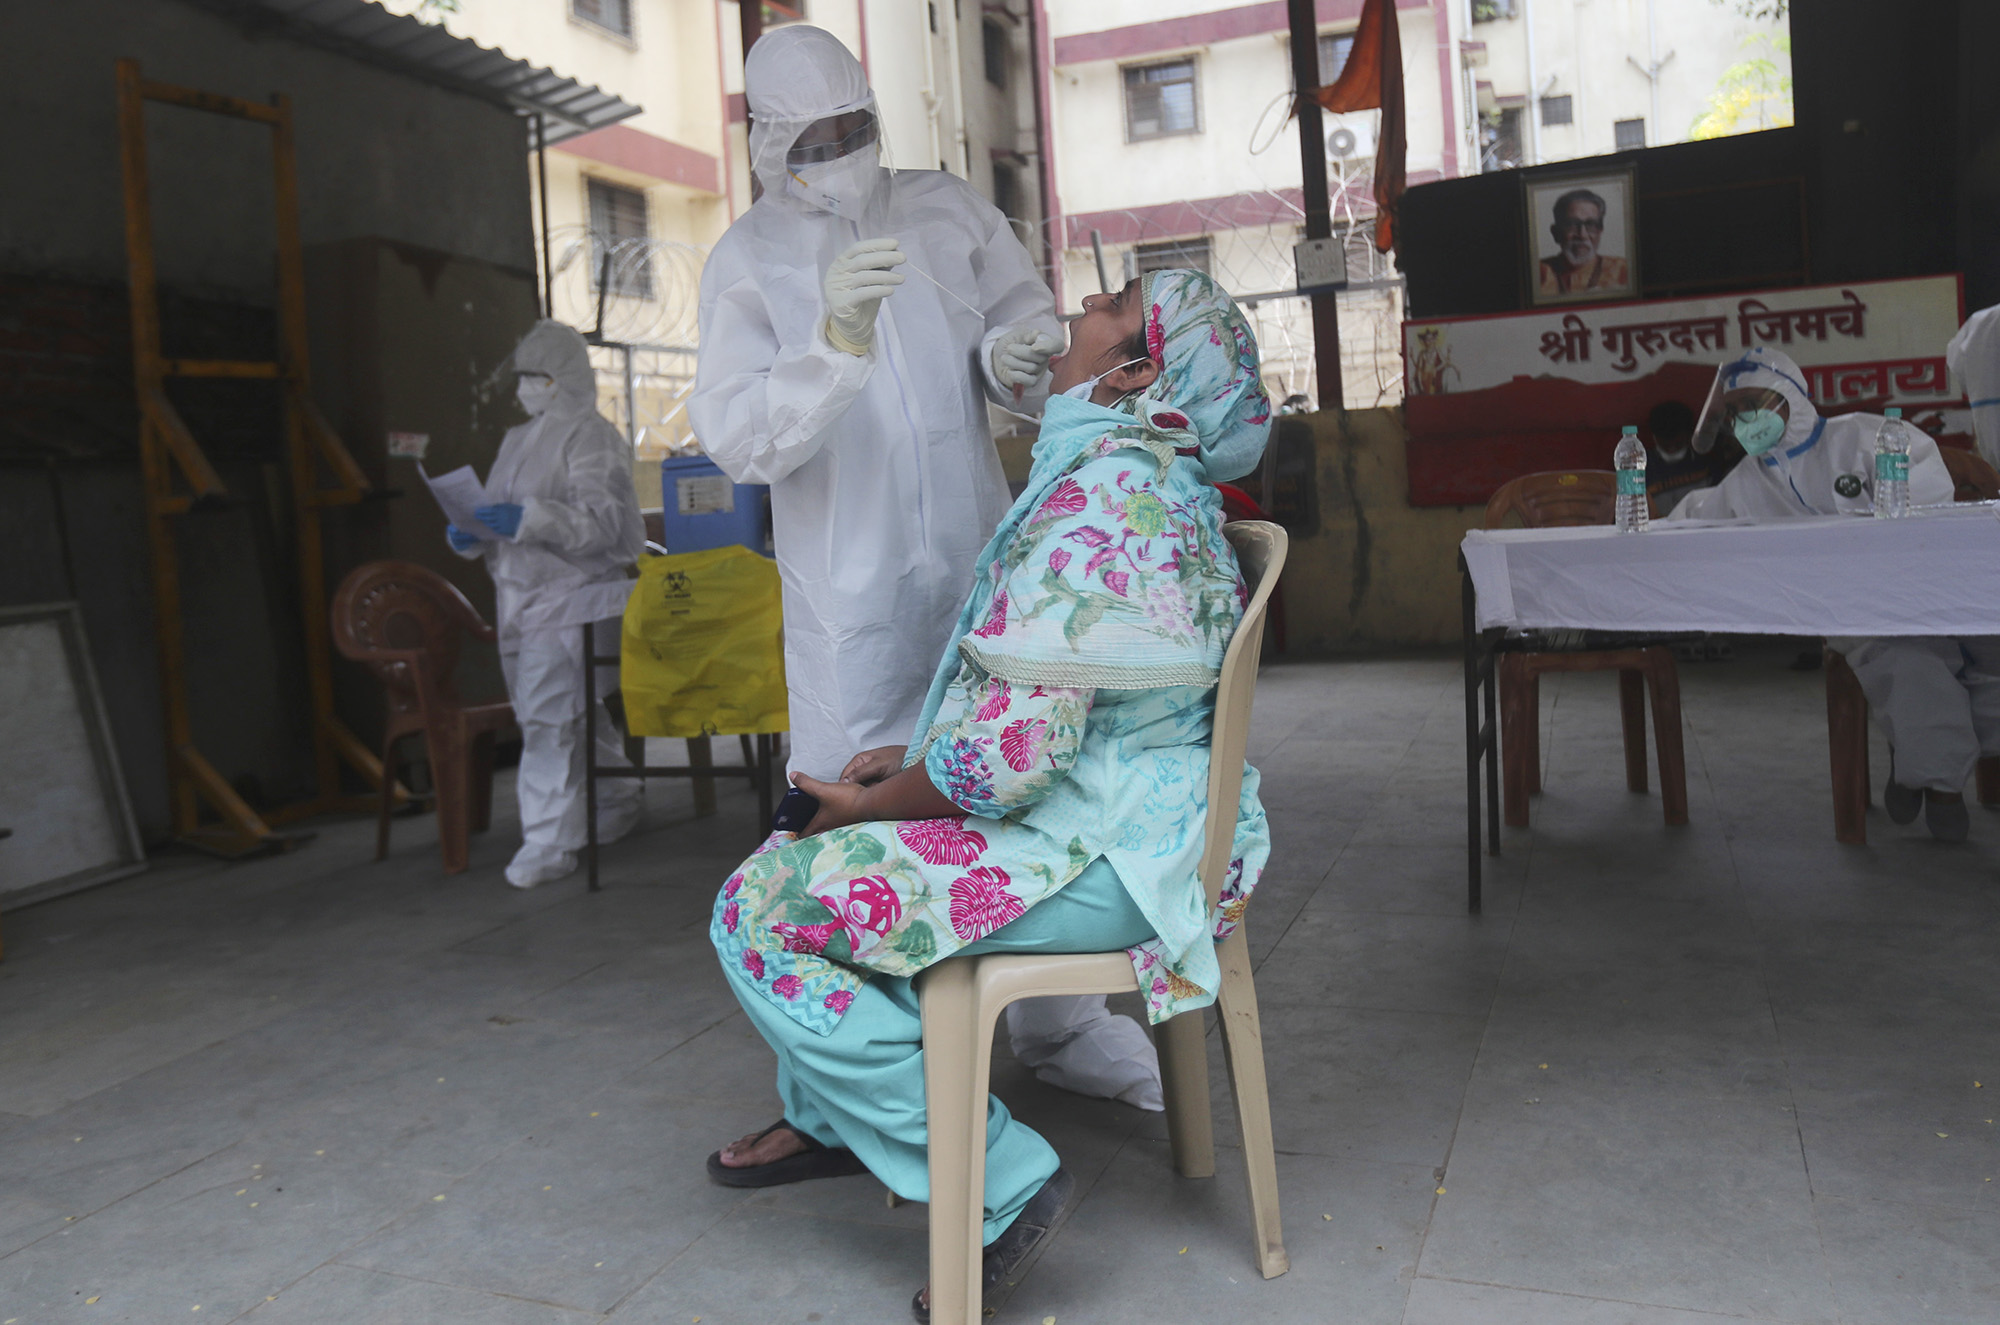 A health worker takes a swab test for the novel coronavirus of a woman during a free medical checkup in Mumbai, India, on Friday, June 26.